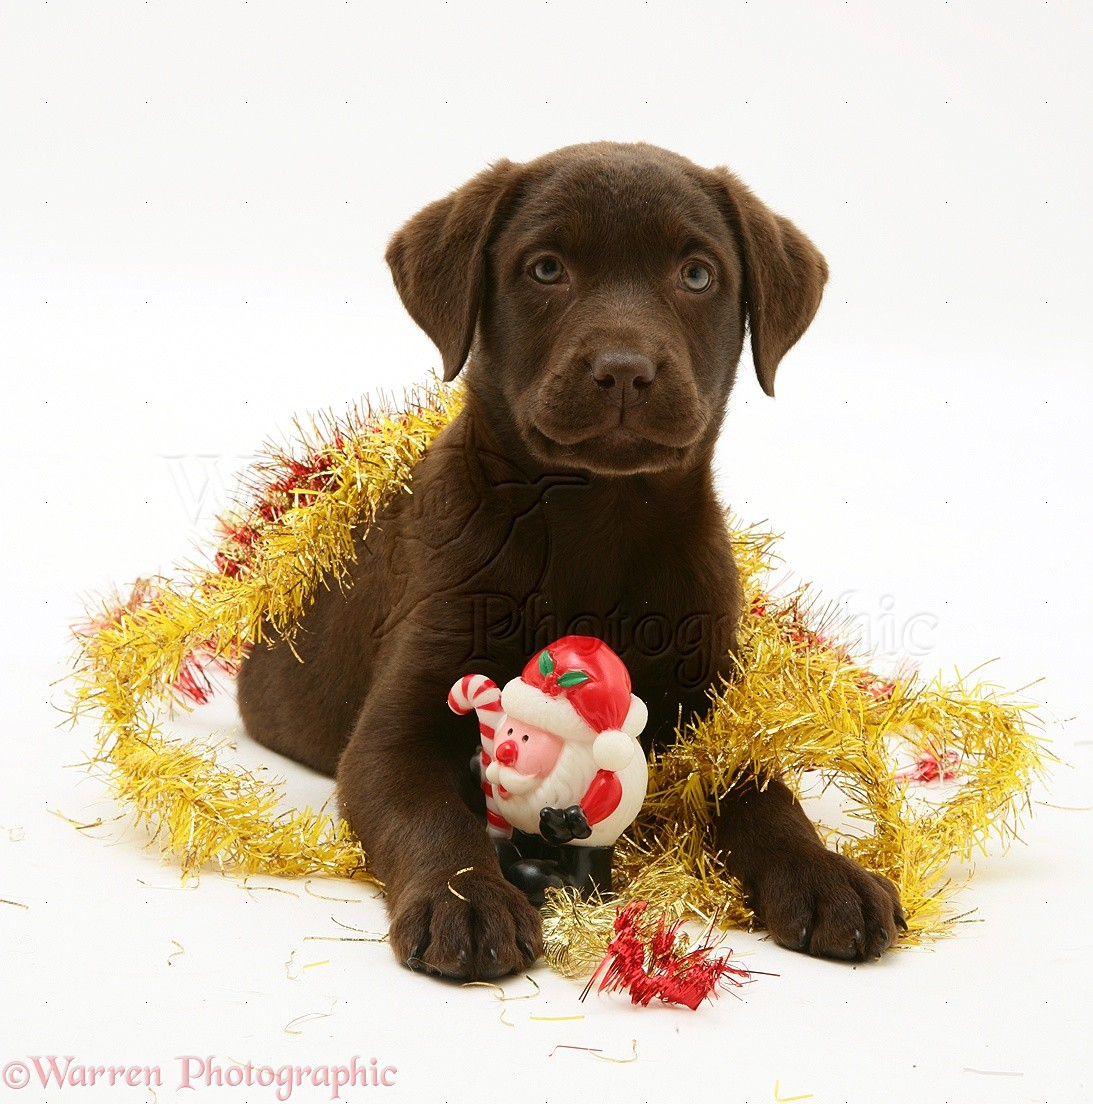 Dog Chocolate Labrador Retriever Pup With Christmas Tinsel Photo Wp20019